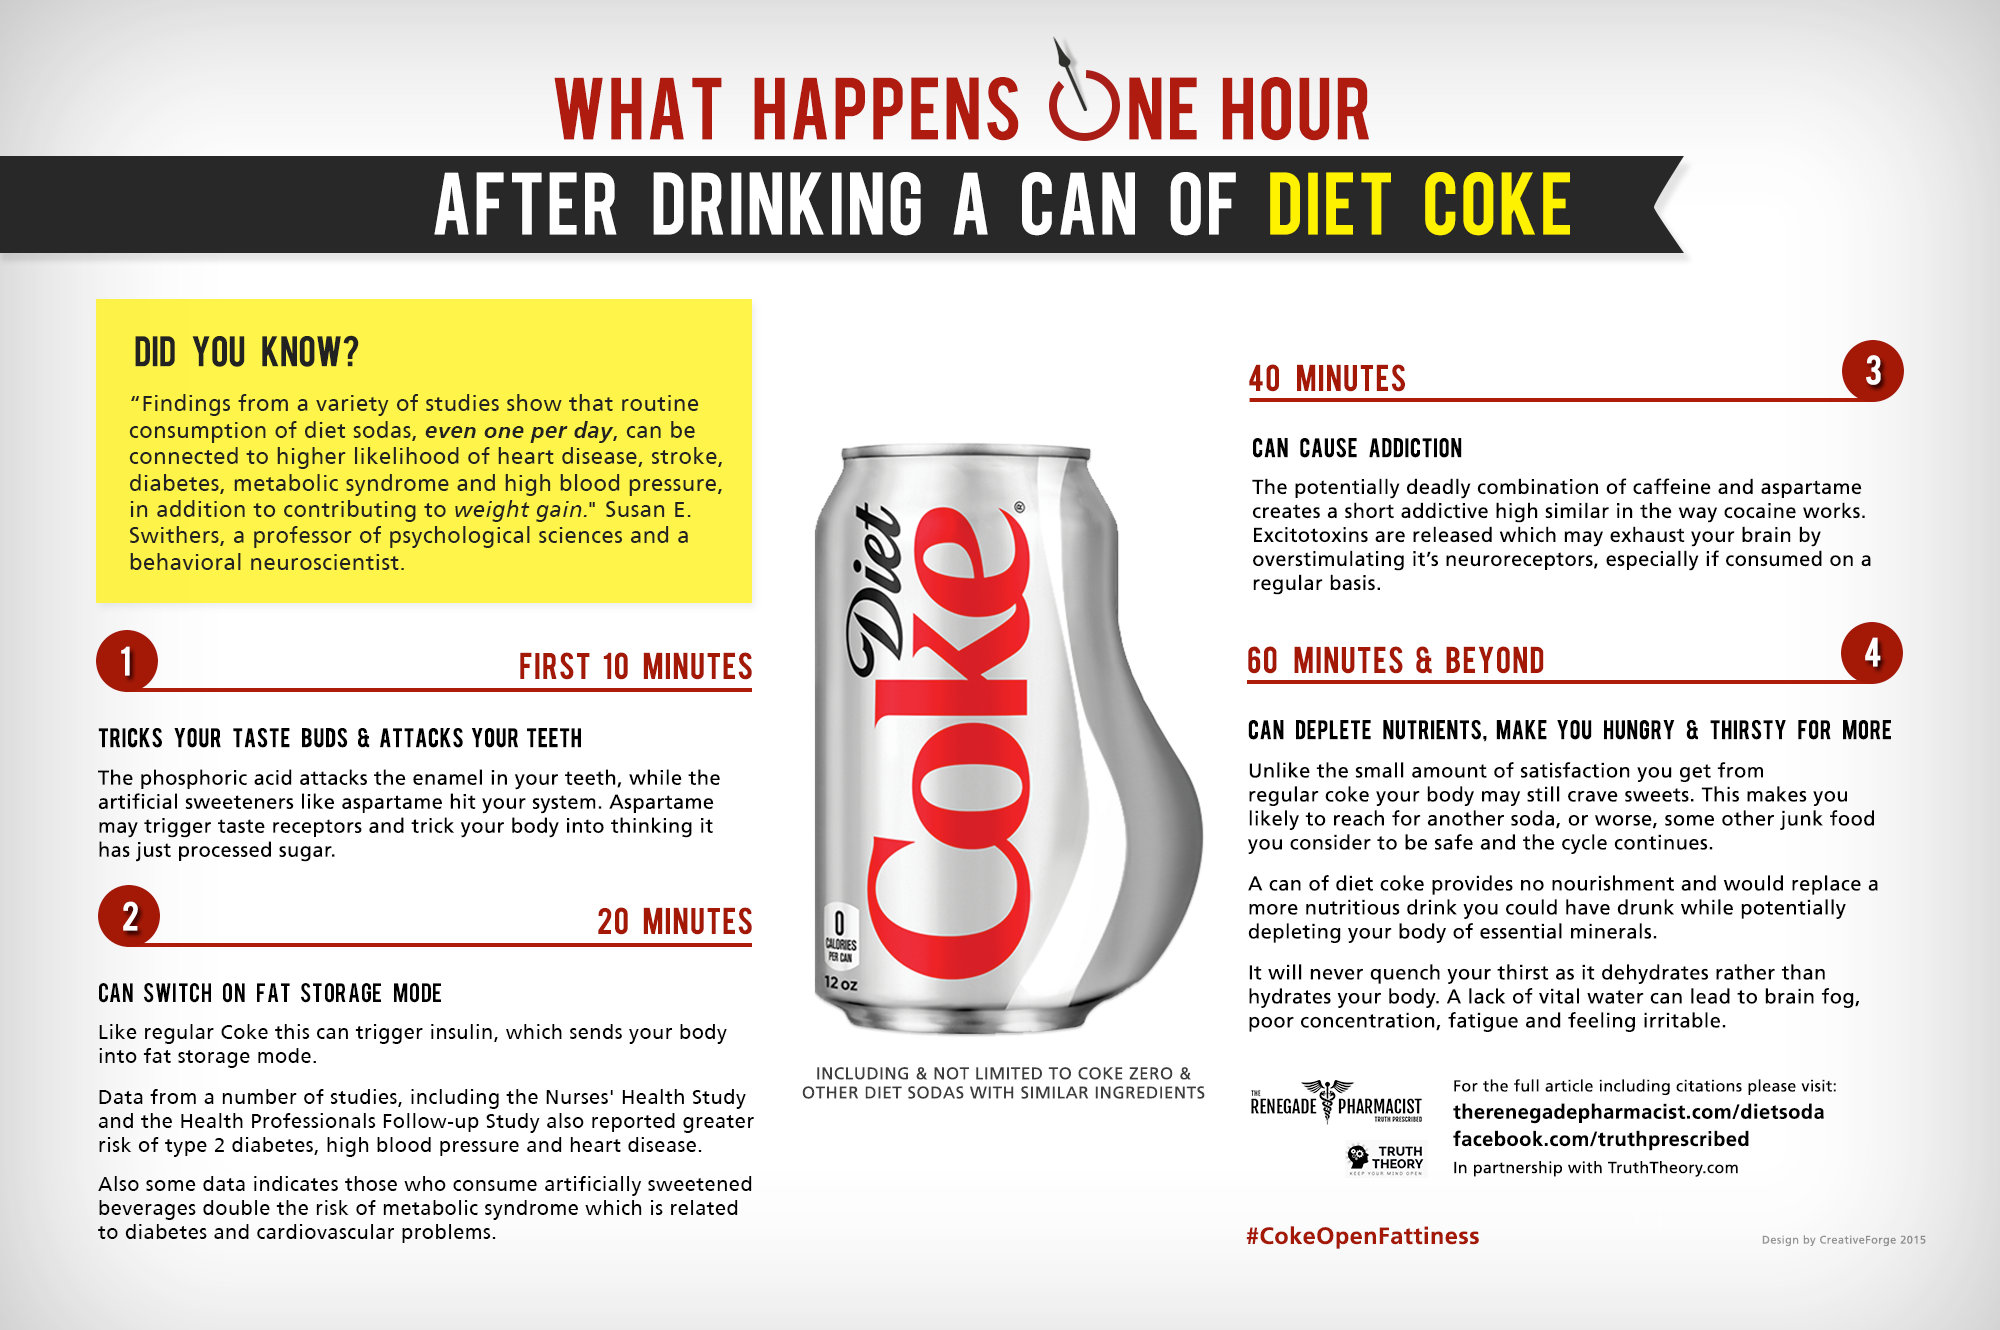 is diet coke worse than coke